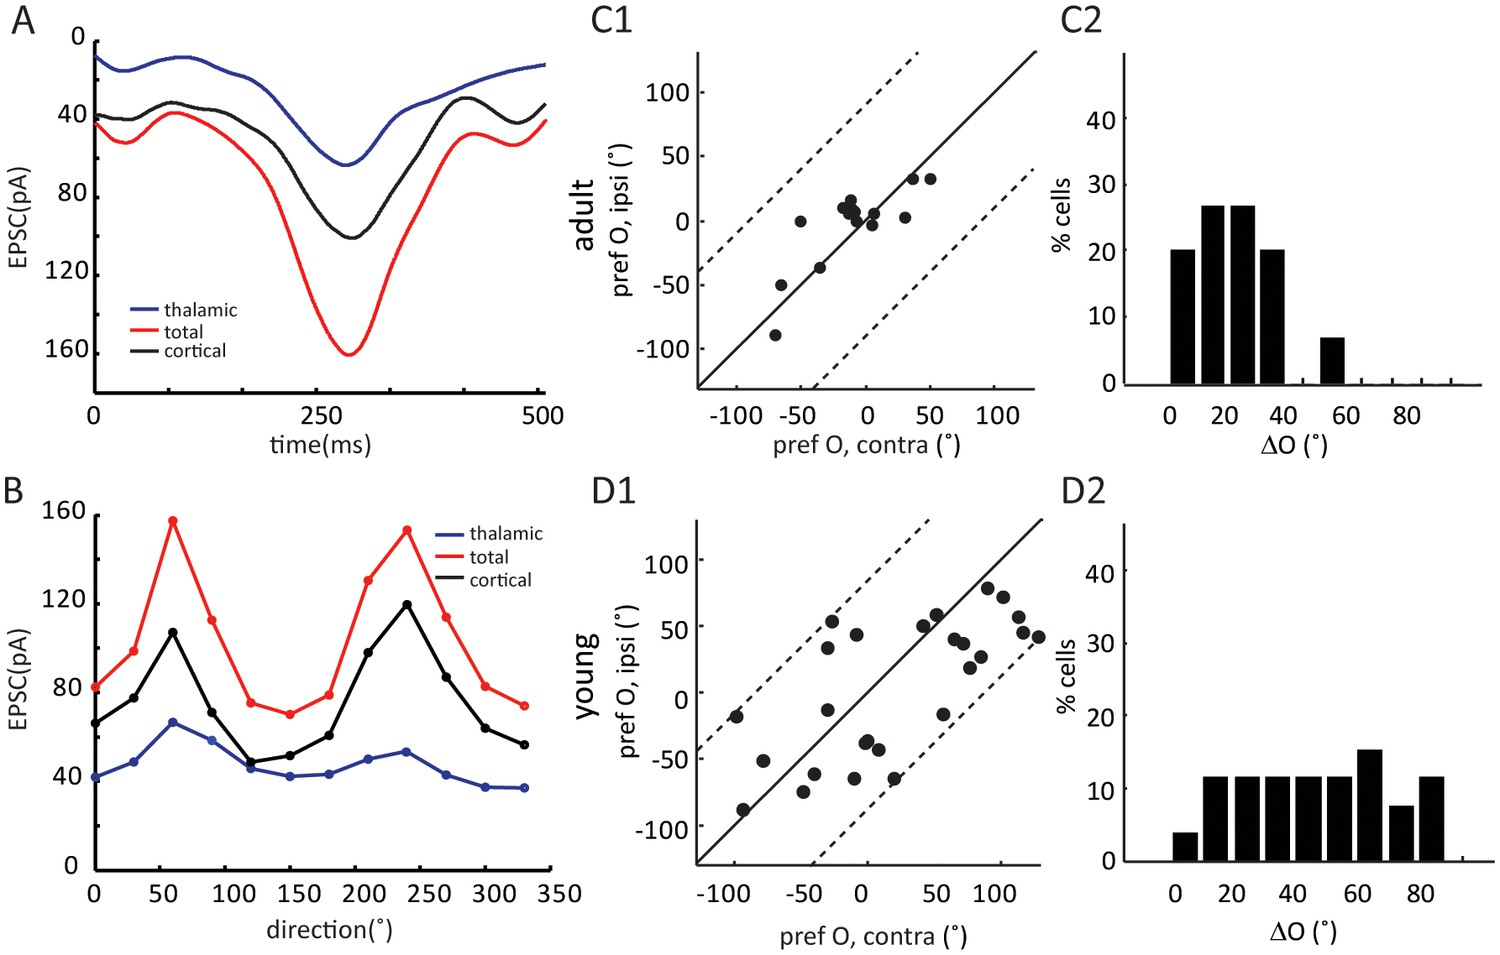 Figures and data in Binocular matching of thalamocortical